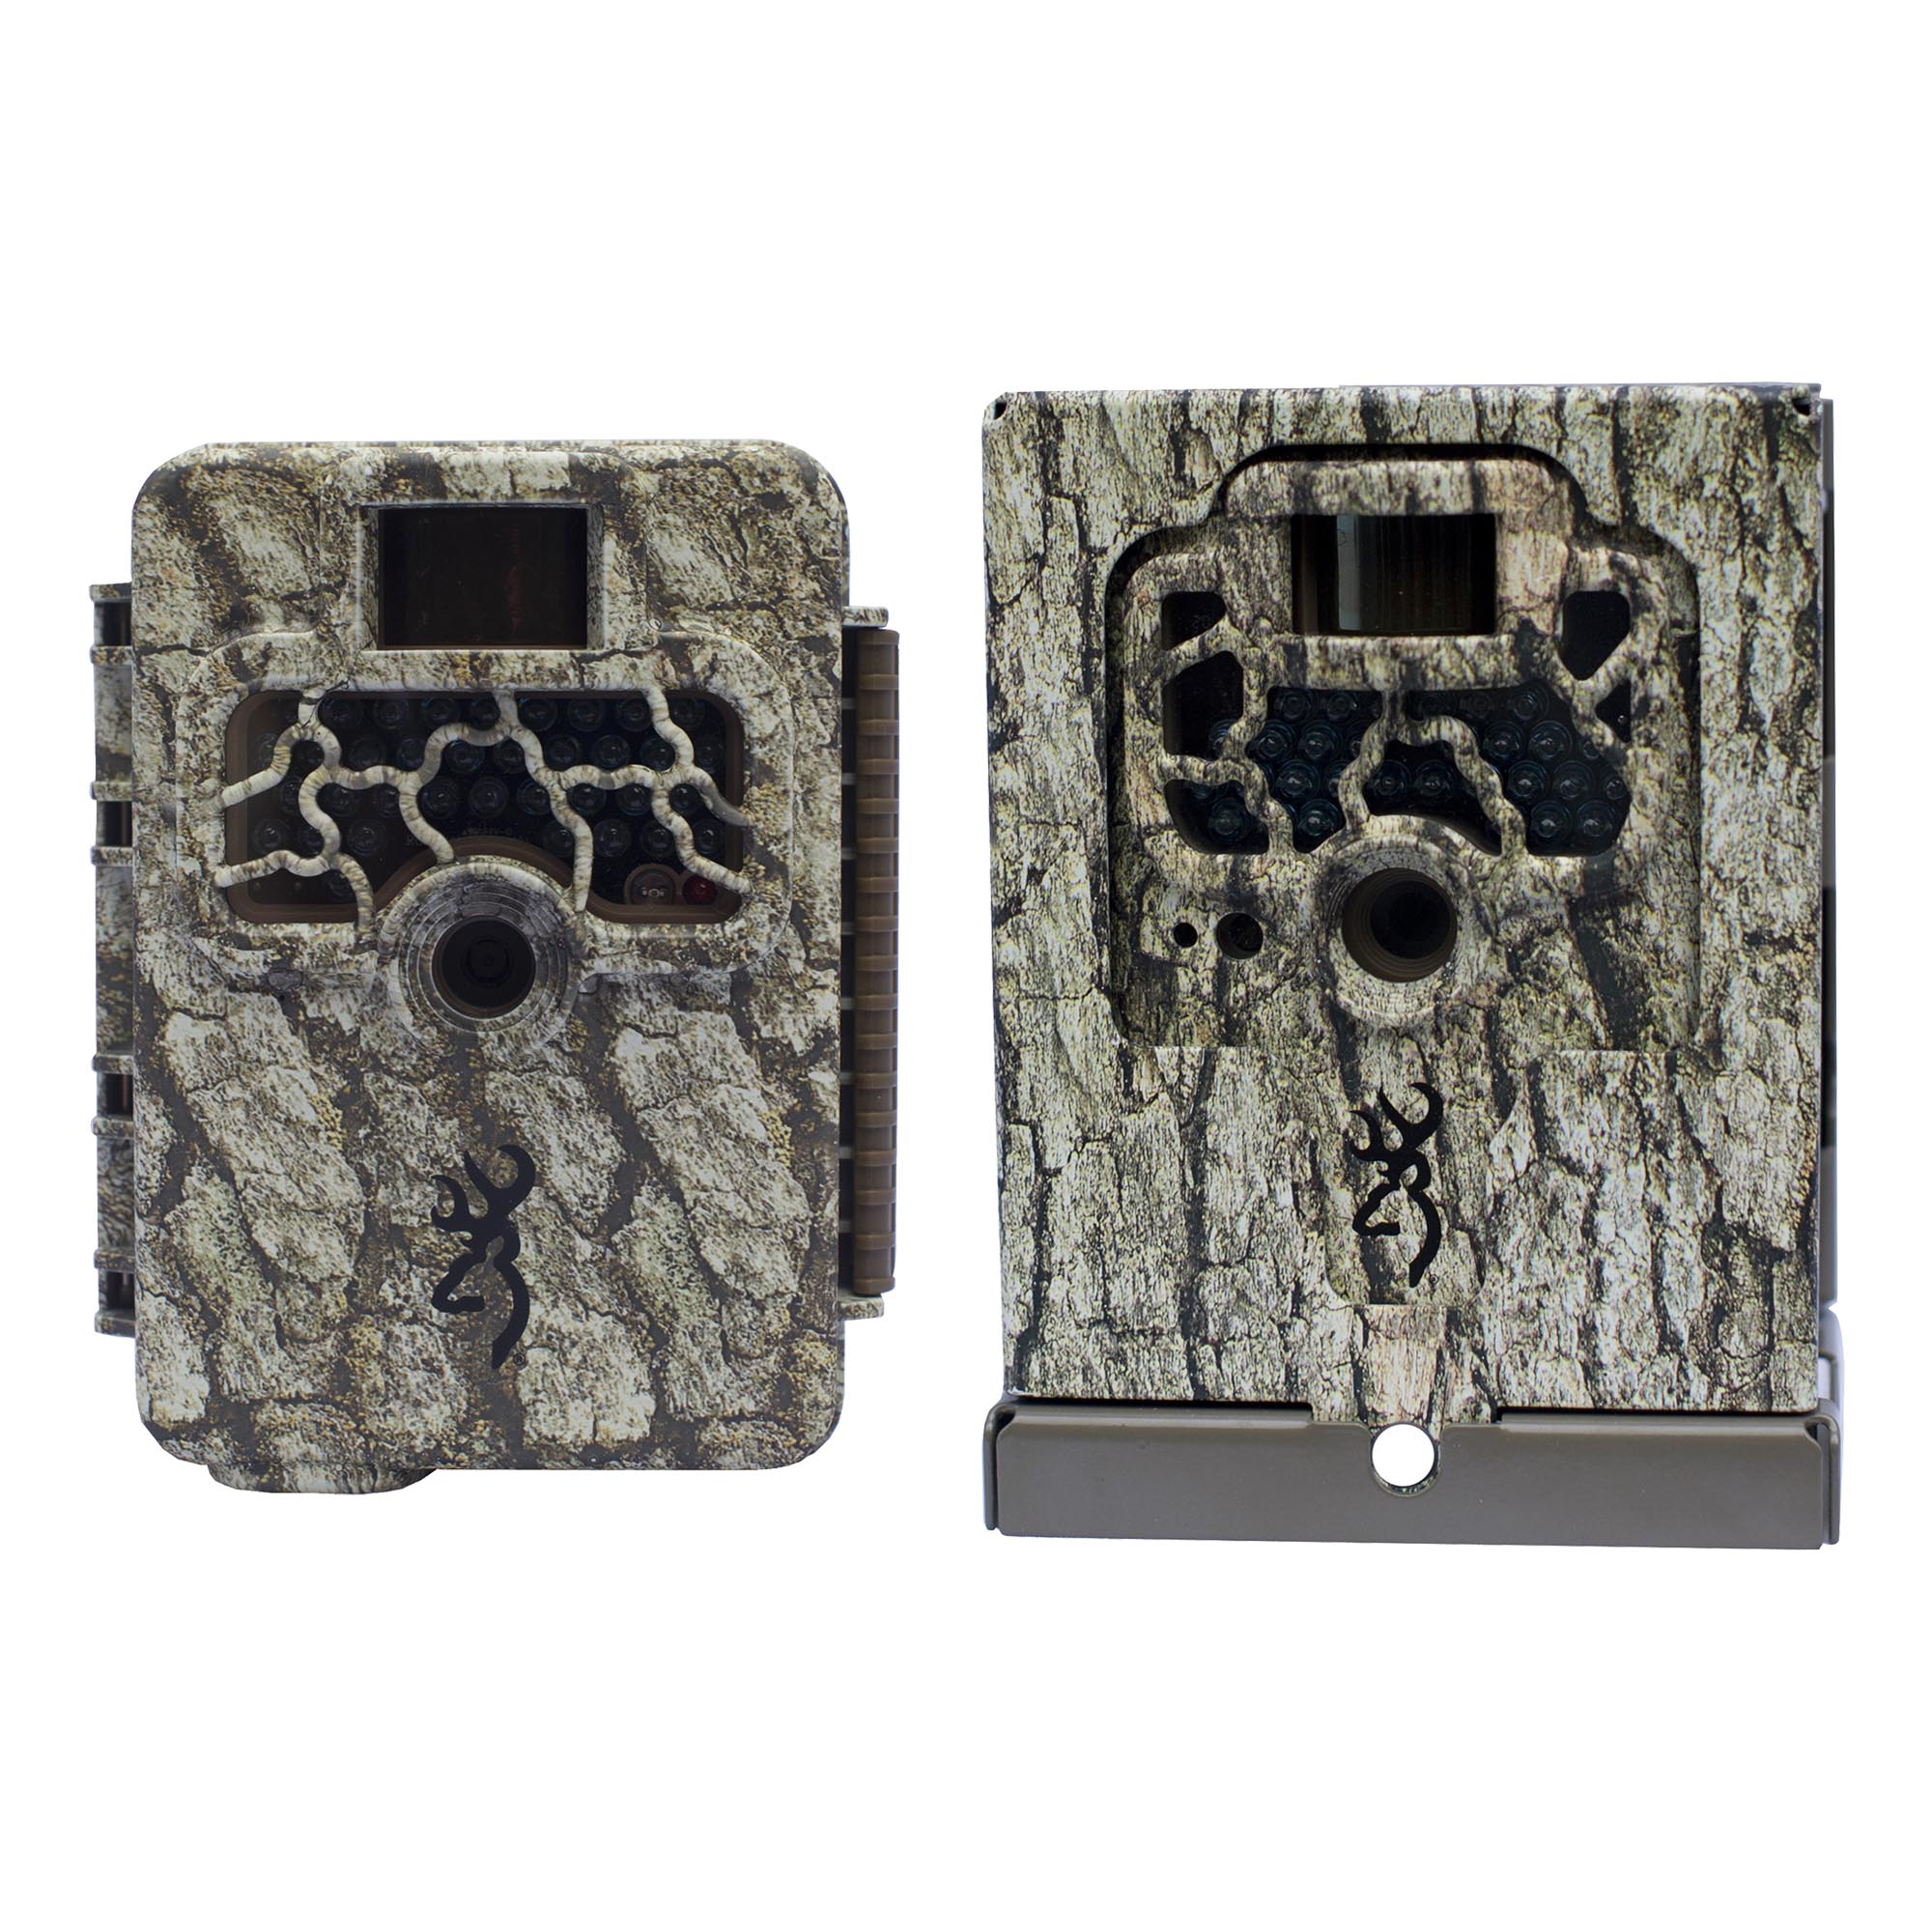 Browning Trail Cameras Command Ops 14MP HD Video IR Game Camera + Security Box by Browning Trail Cameras